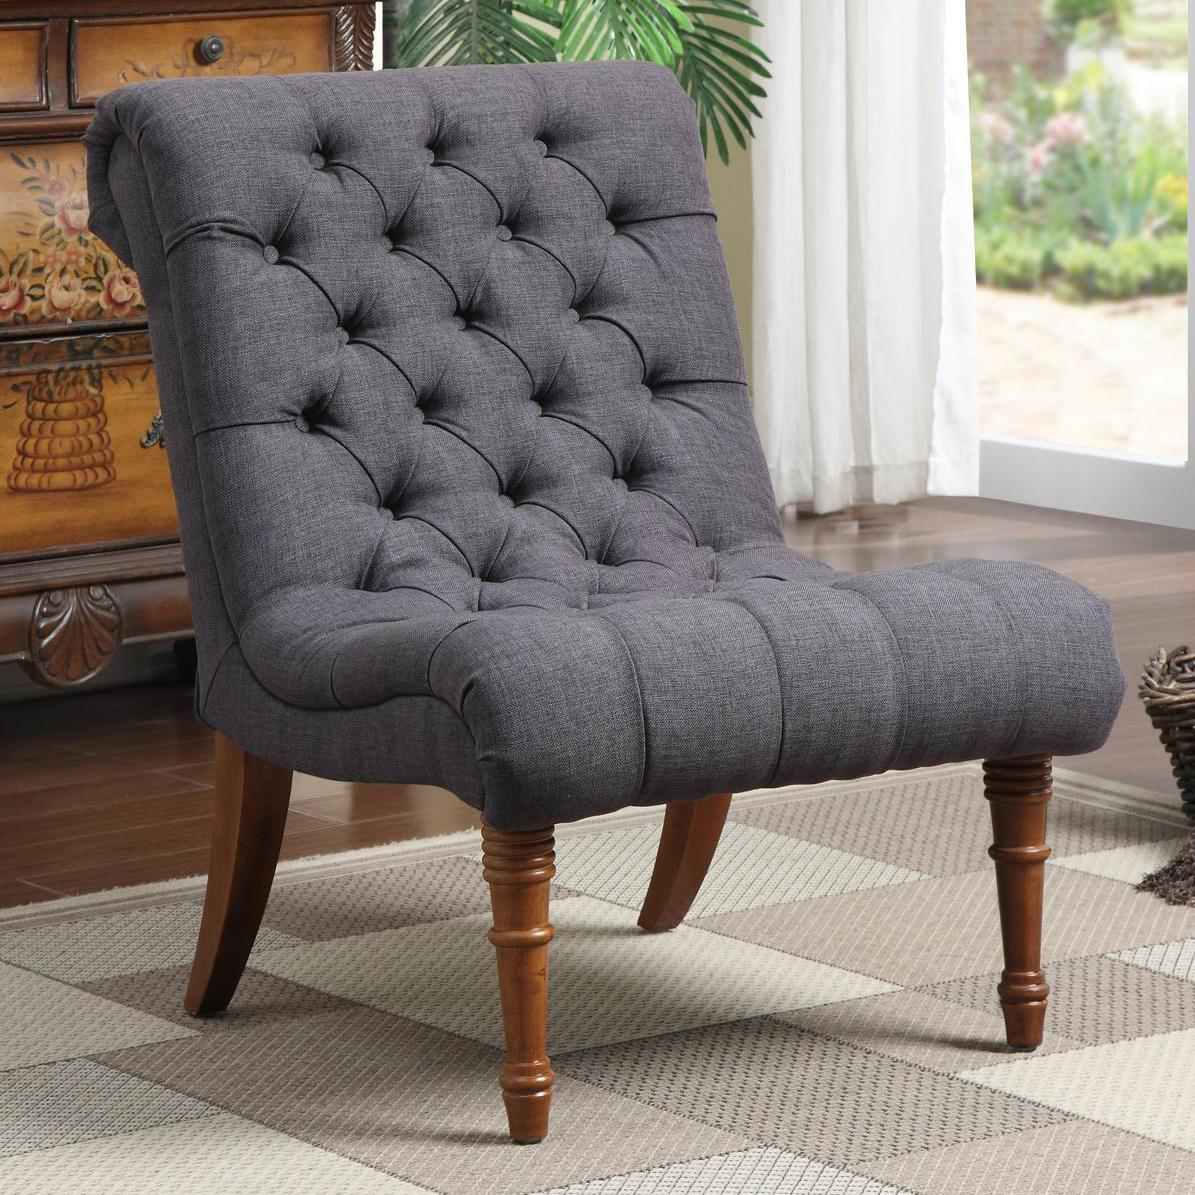 Coaster Accent Seating Tufted Accent Chair - Item Number: 902217